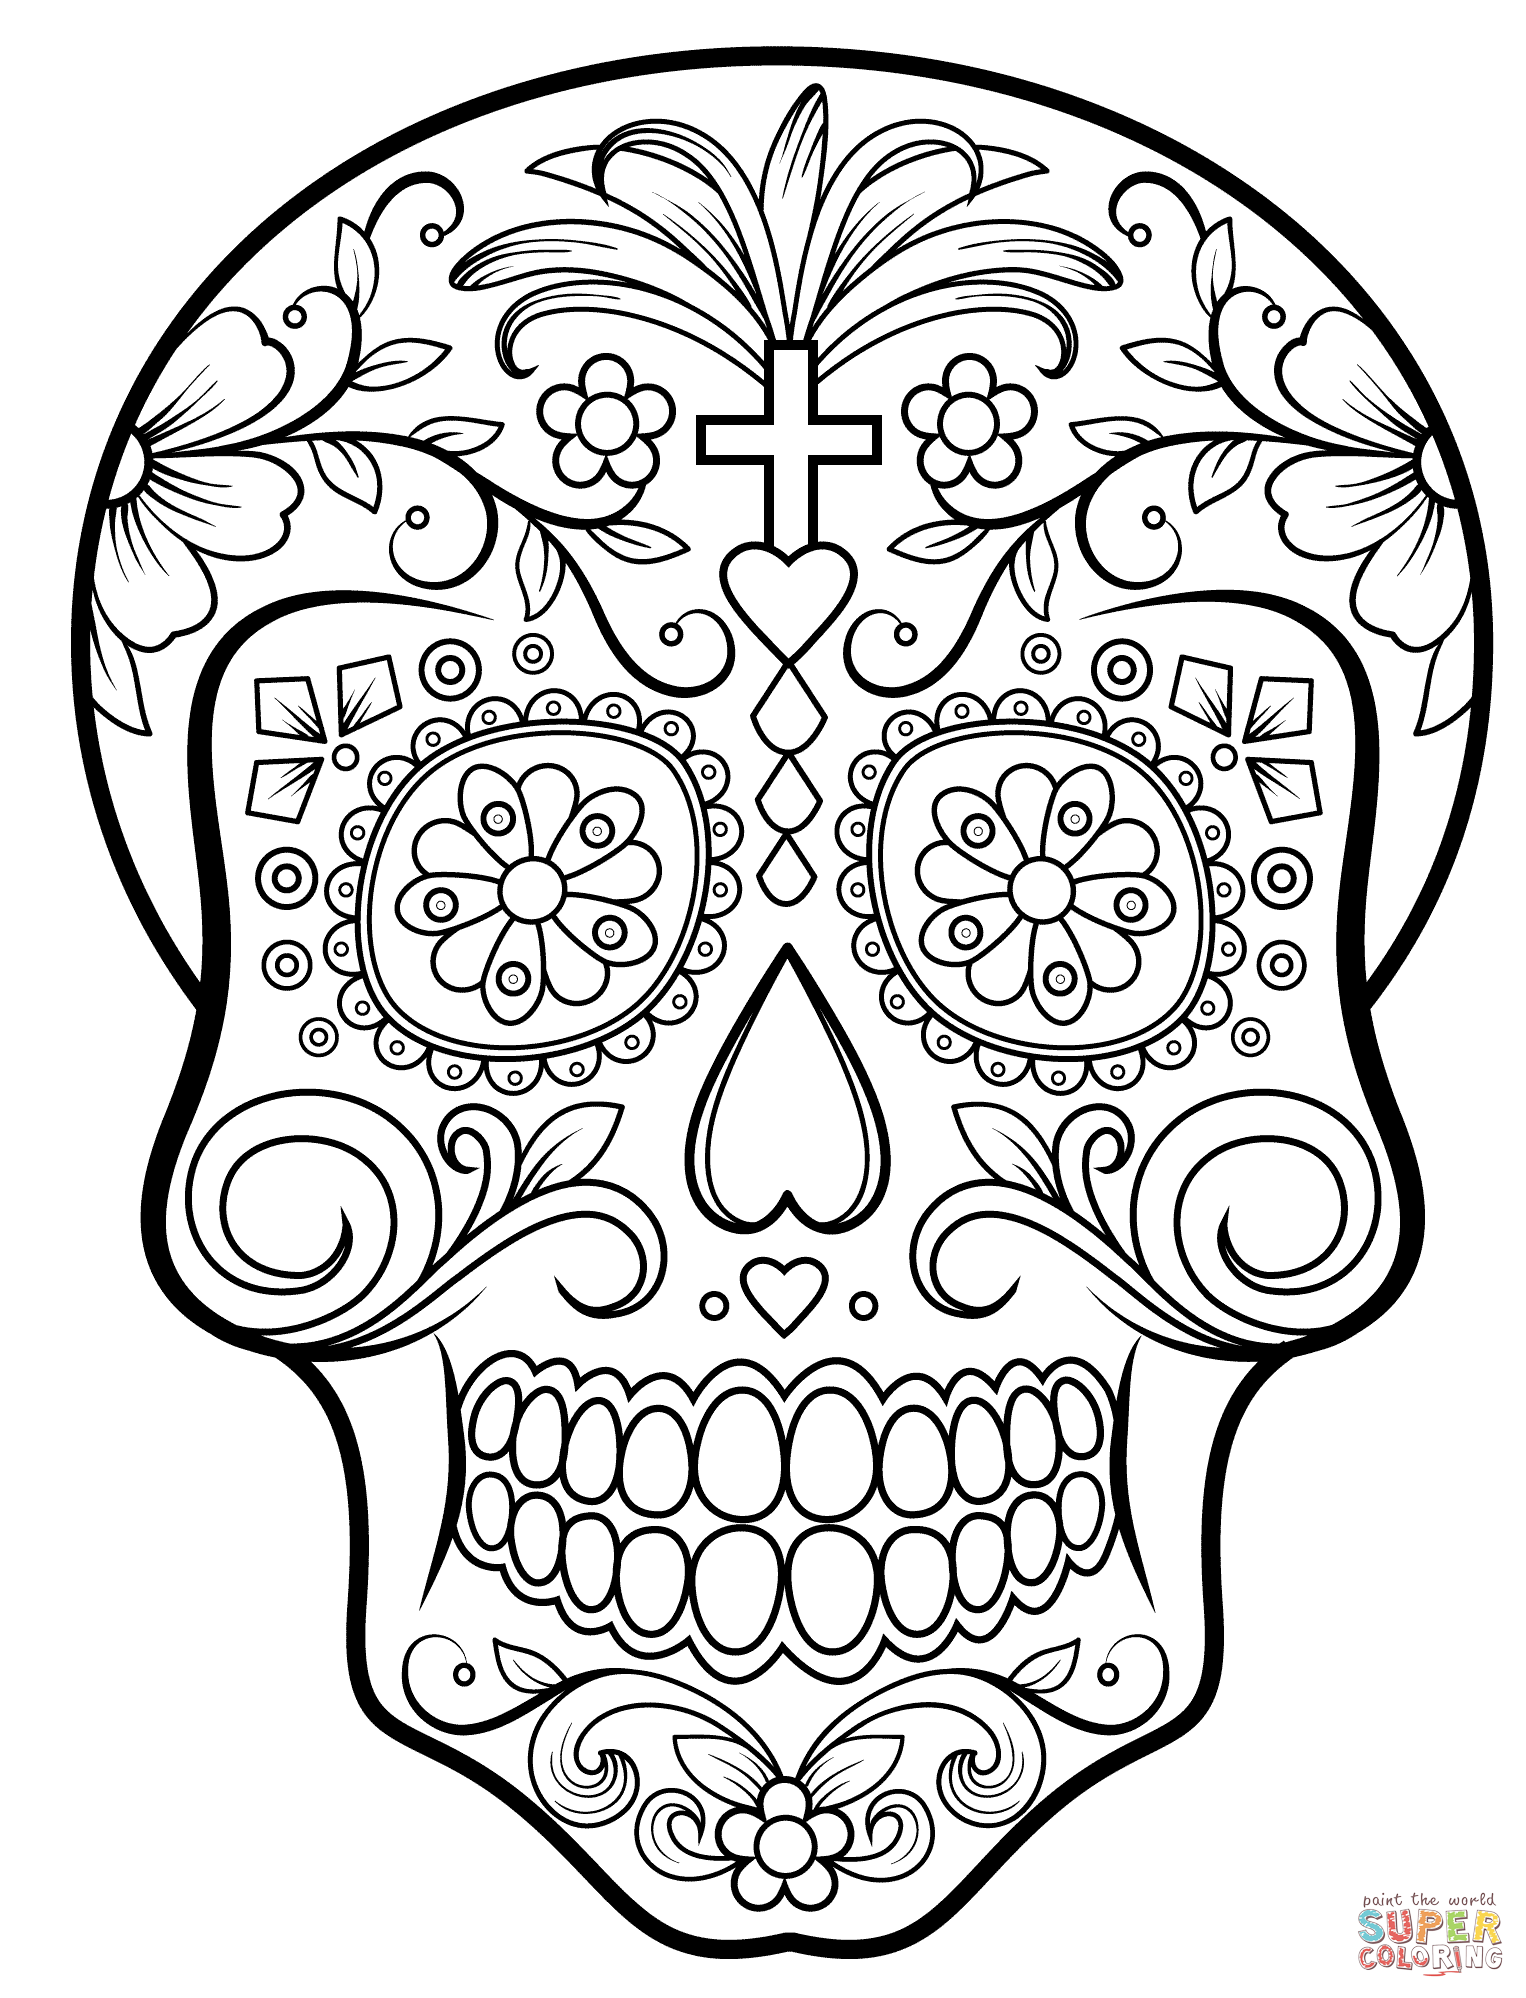 Sugar Skull Skull Coloring Pages Sugar Skull Drawing Skull Template